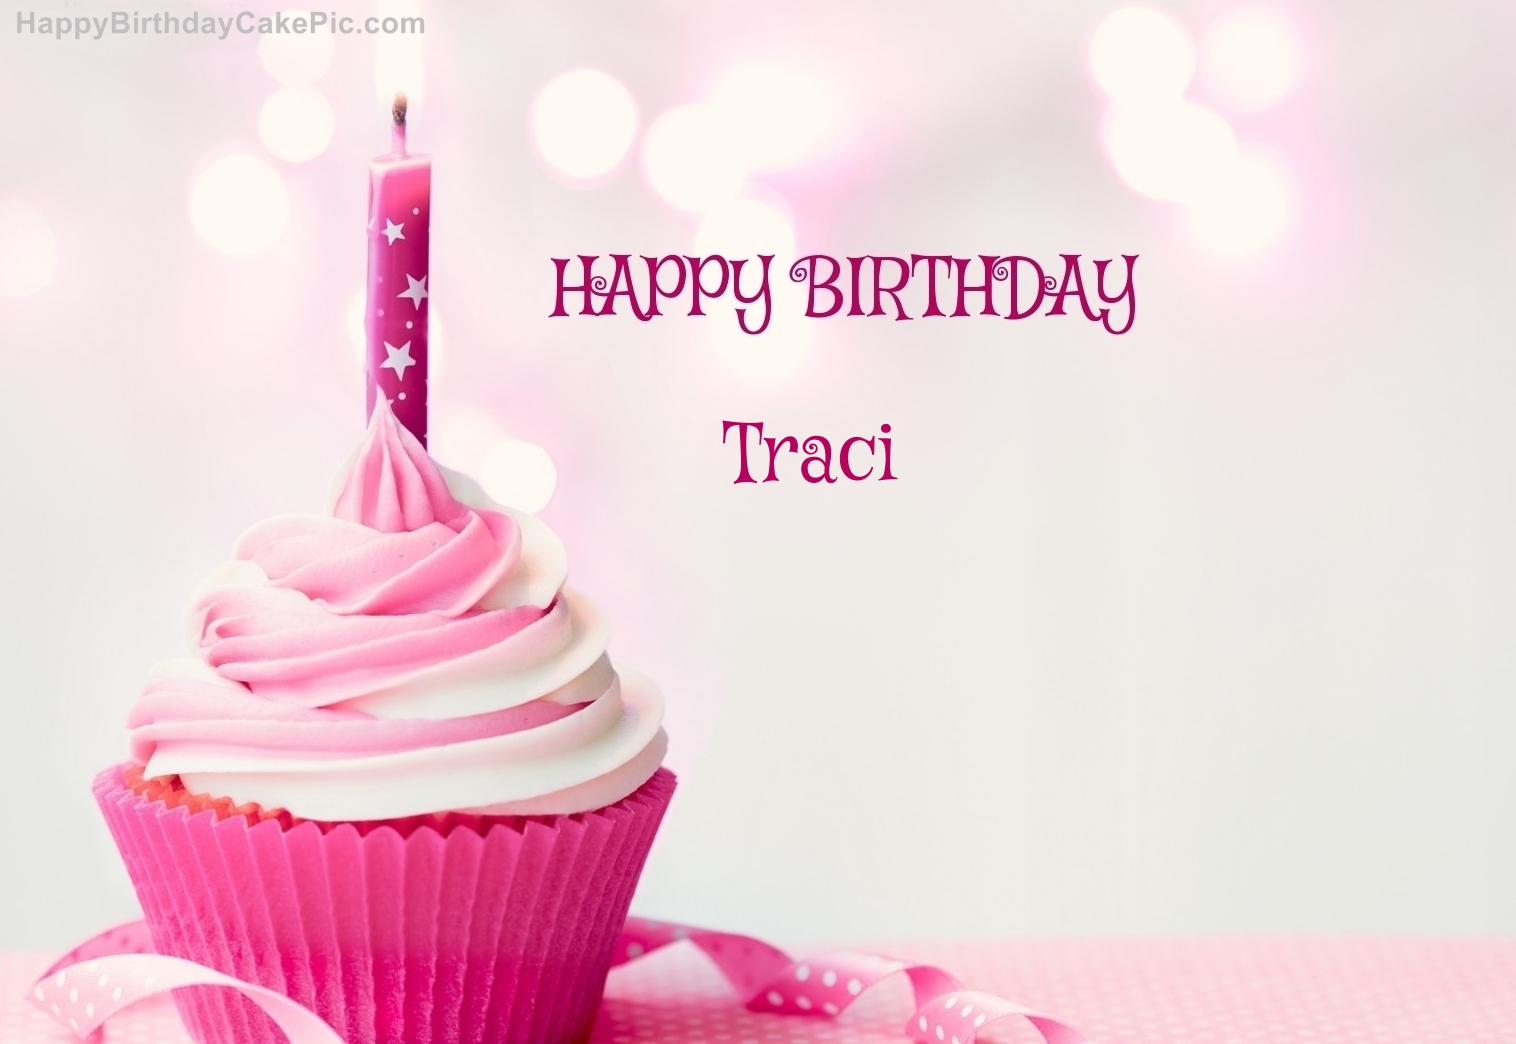 Happy Birthday Cupcake Candle Pink Cake For Traci